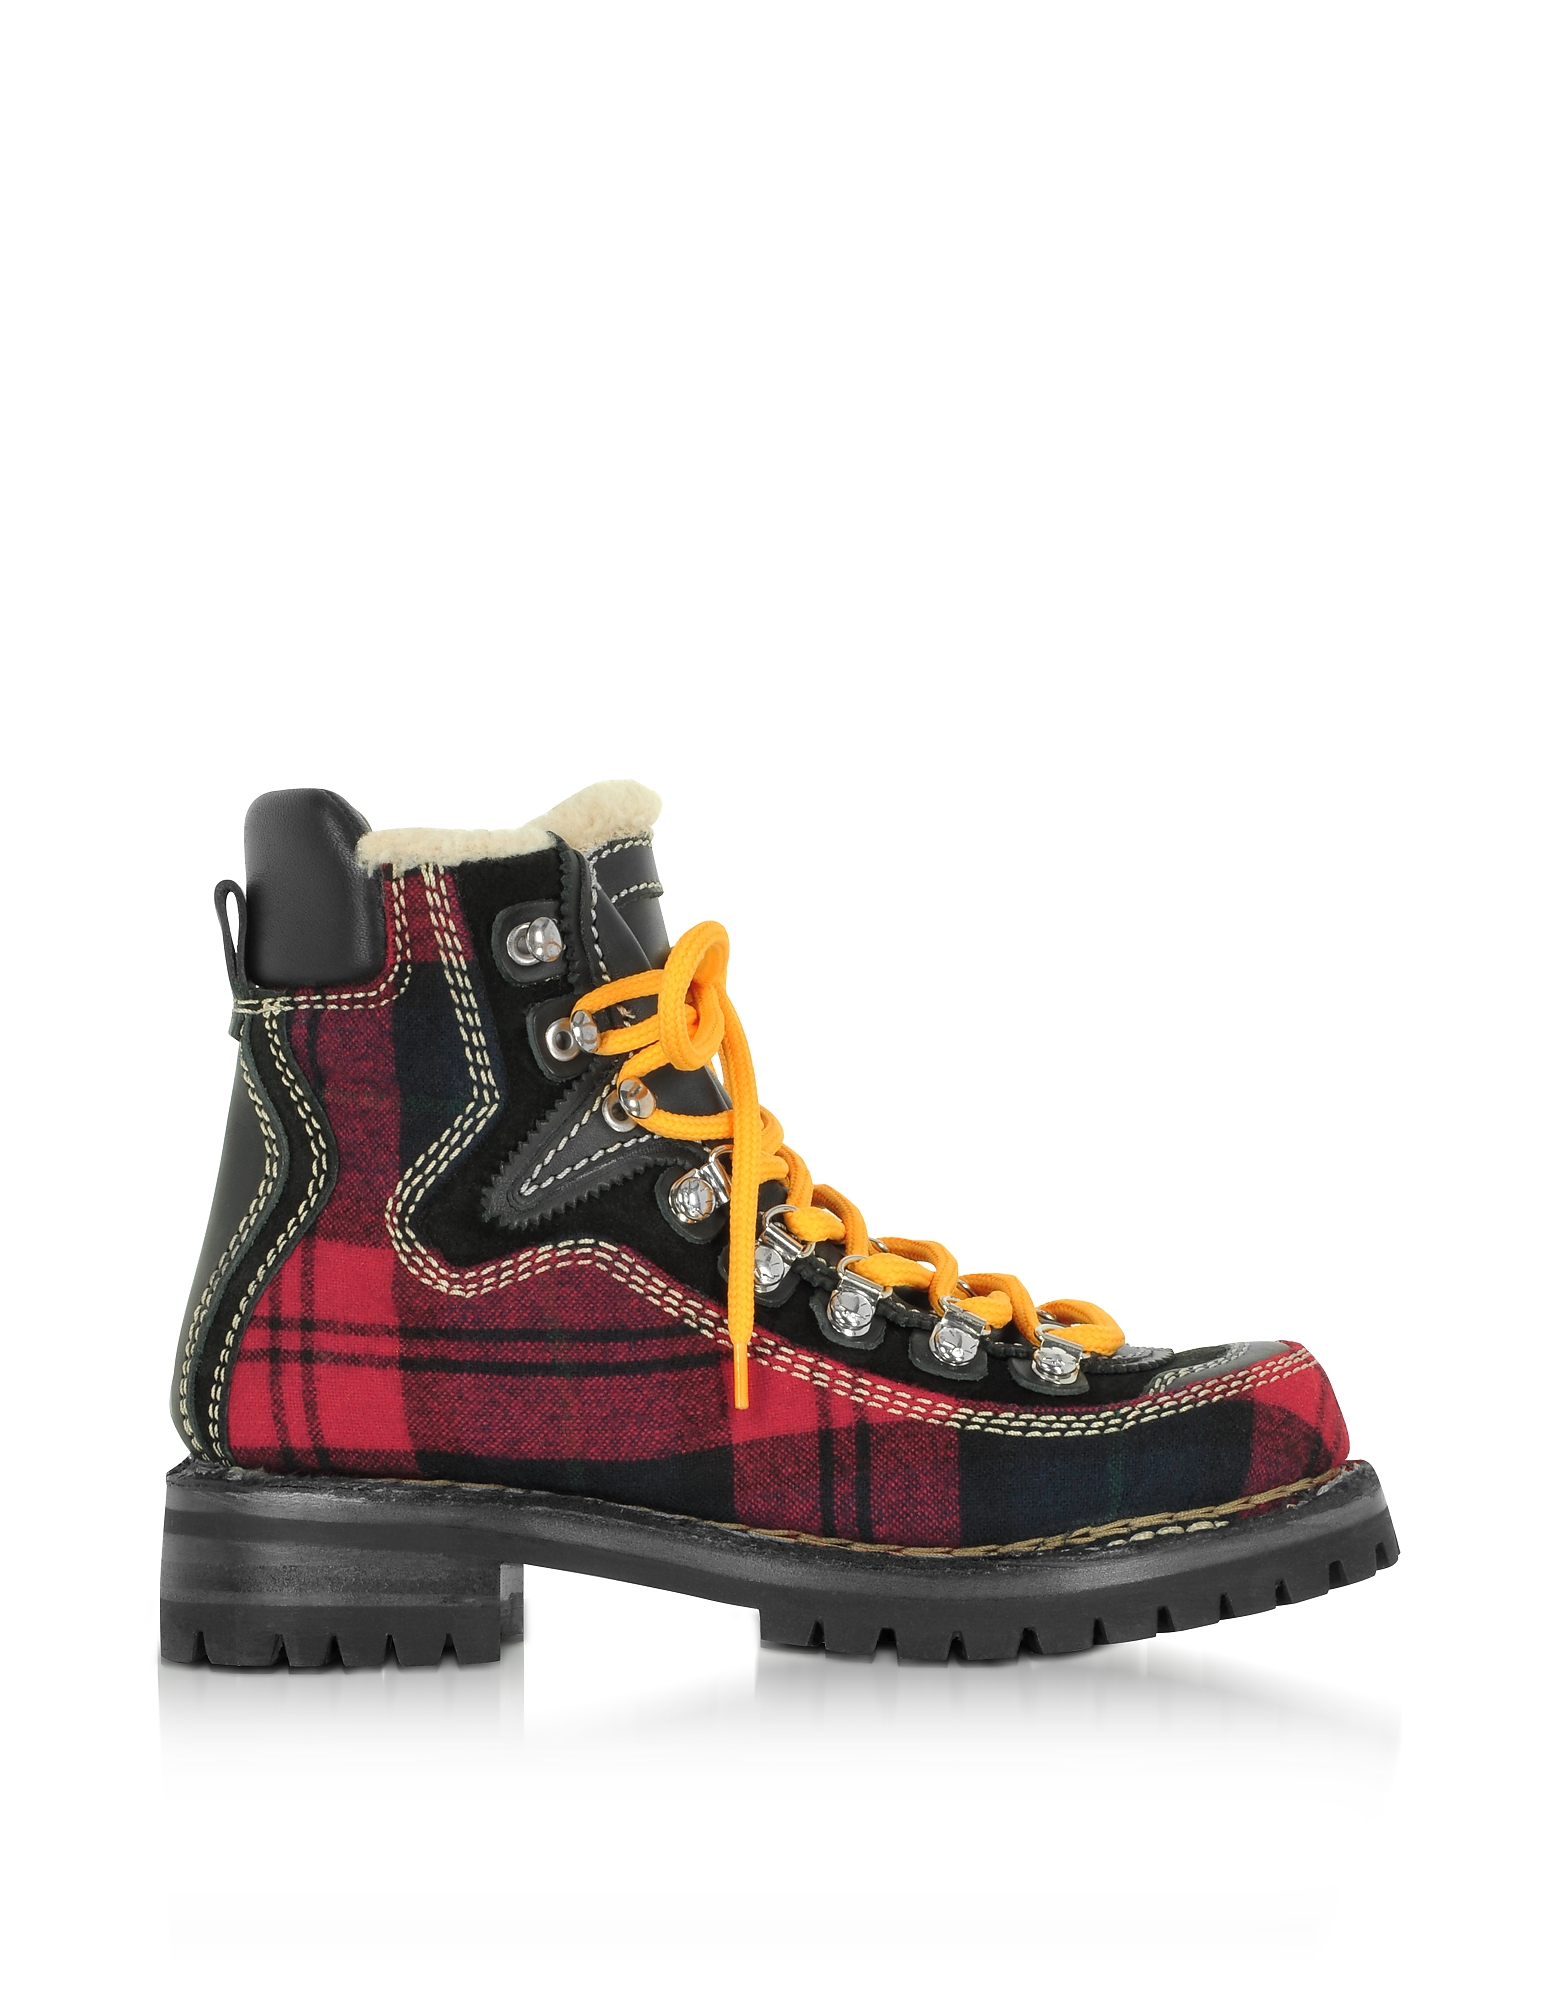 DSquared2 Red Tartan and Leather Canada Hiking Ankle Boots